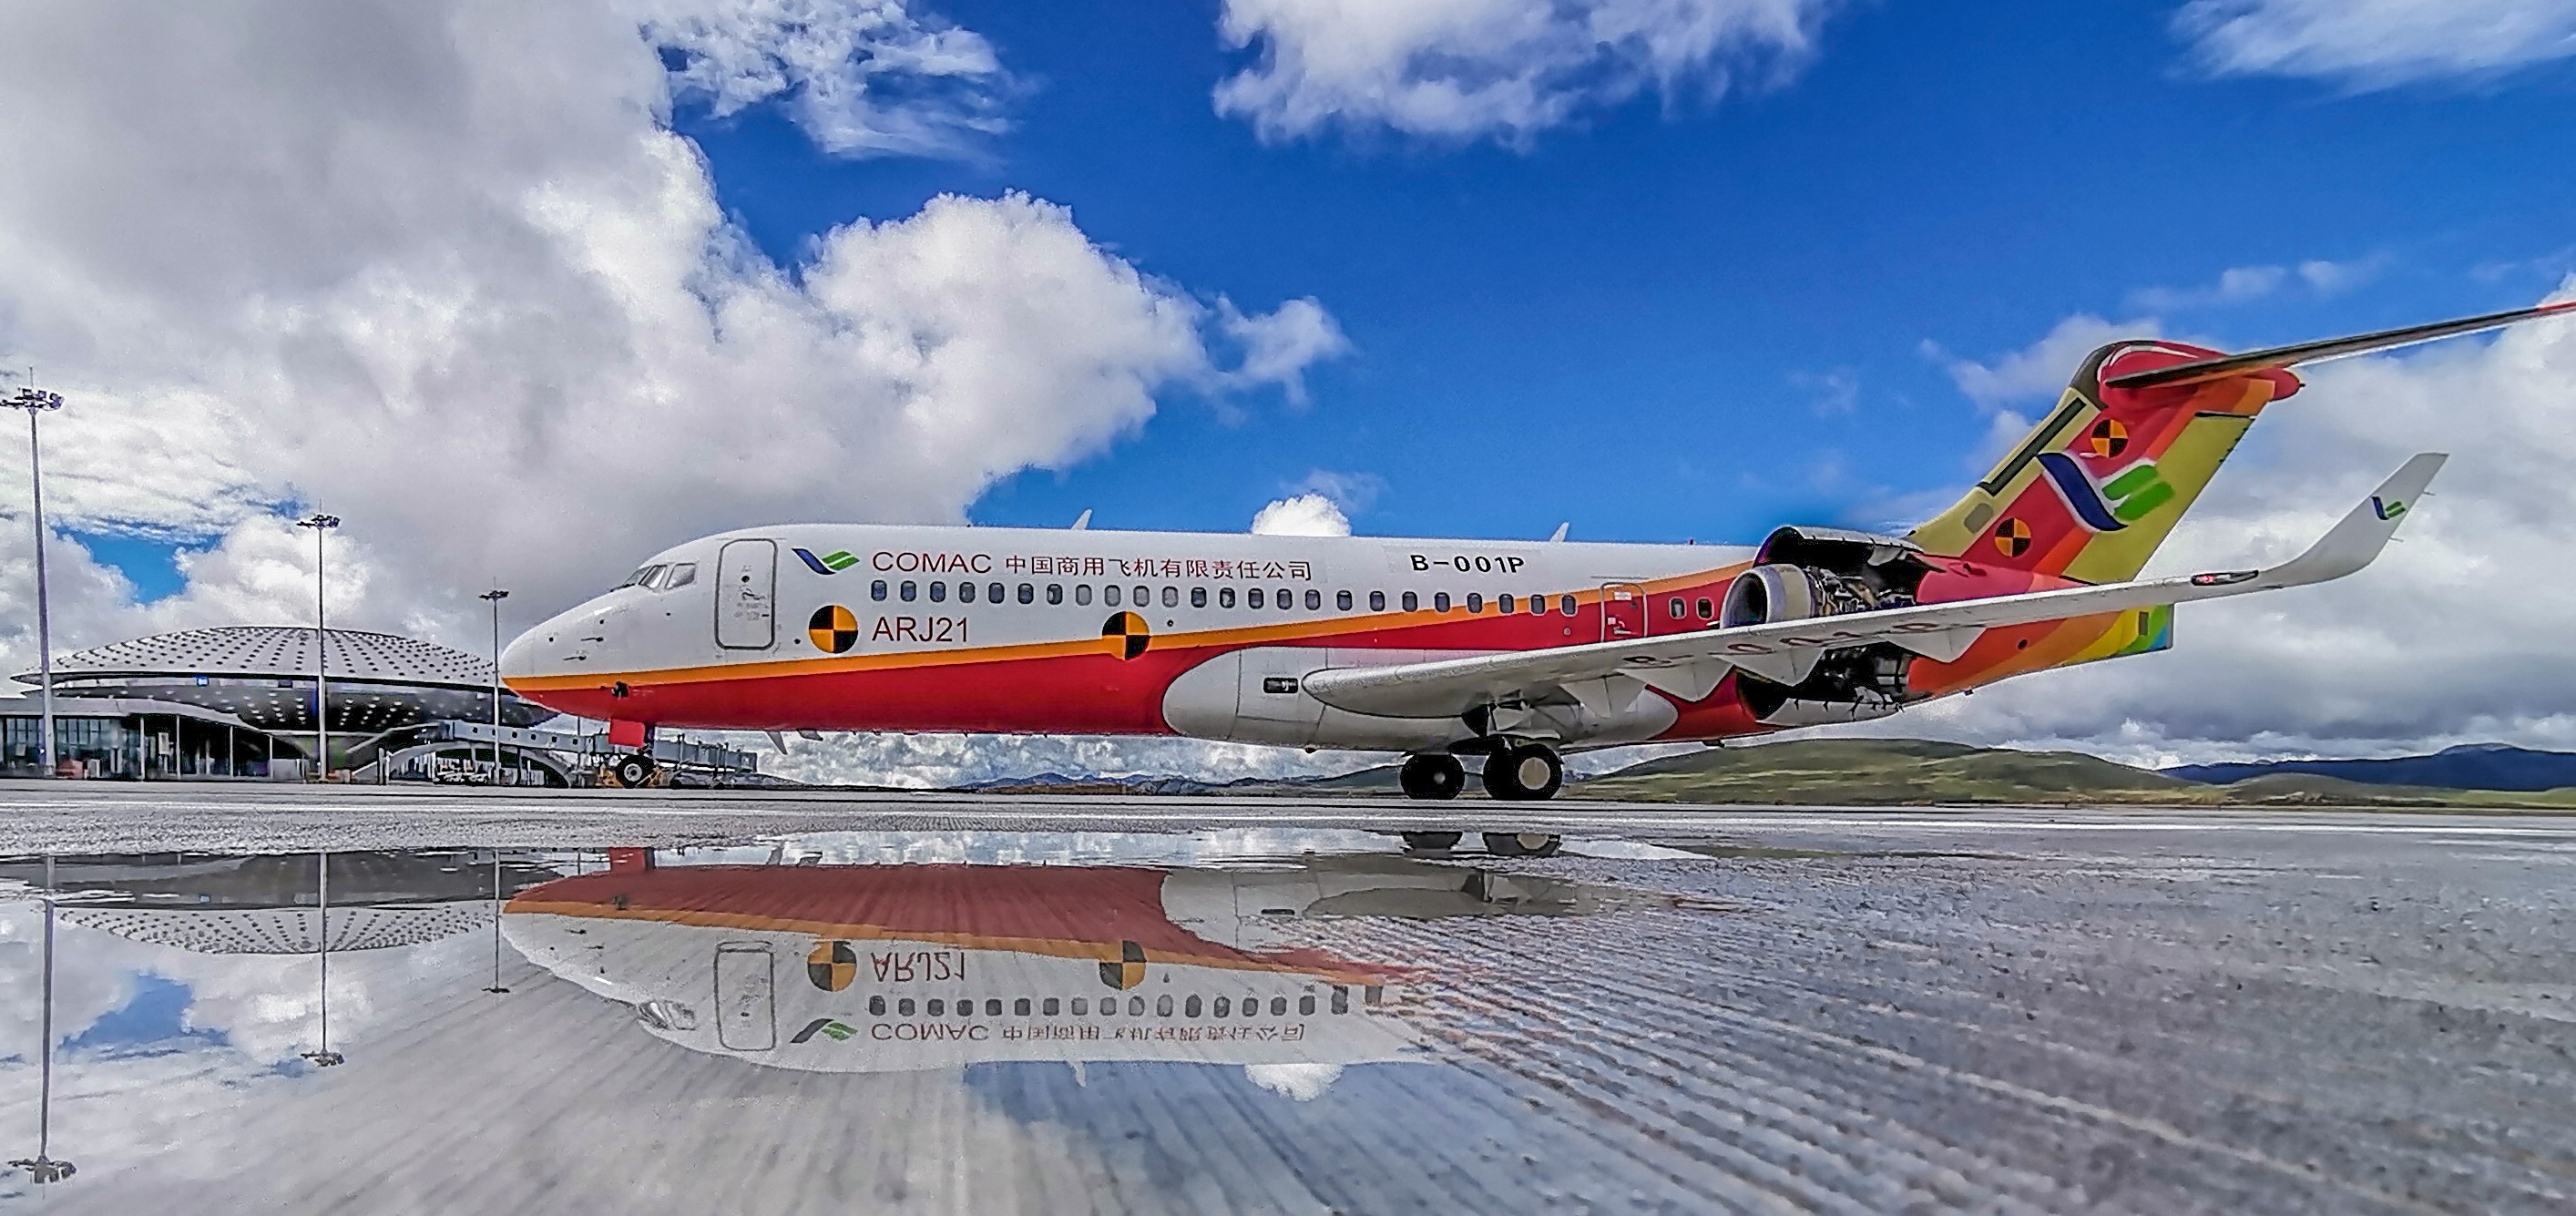 China's self-developed jetliner ARJ21 completes trial flight at high altitudes